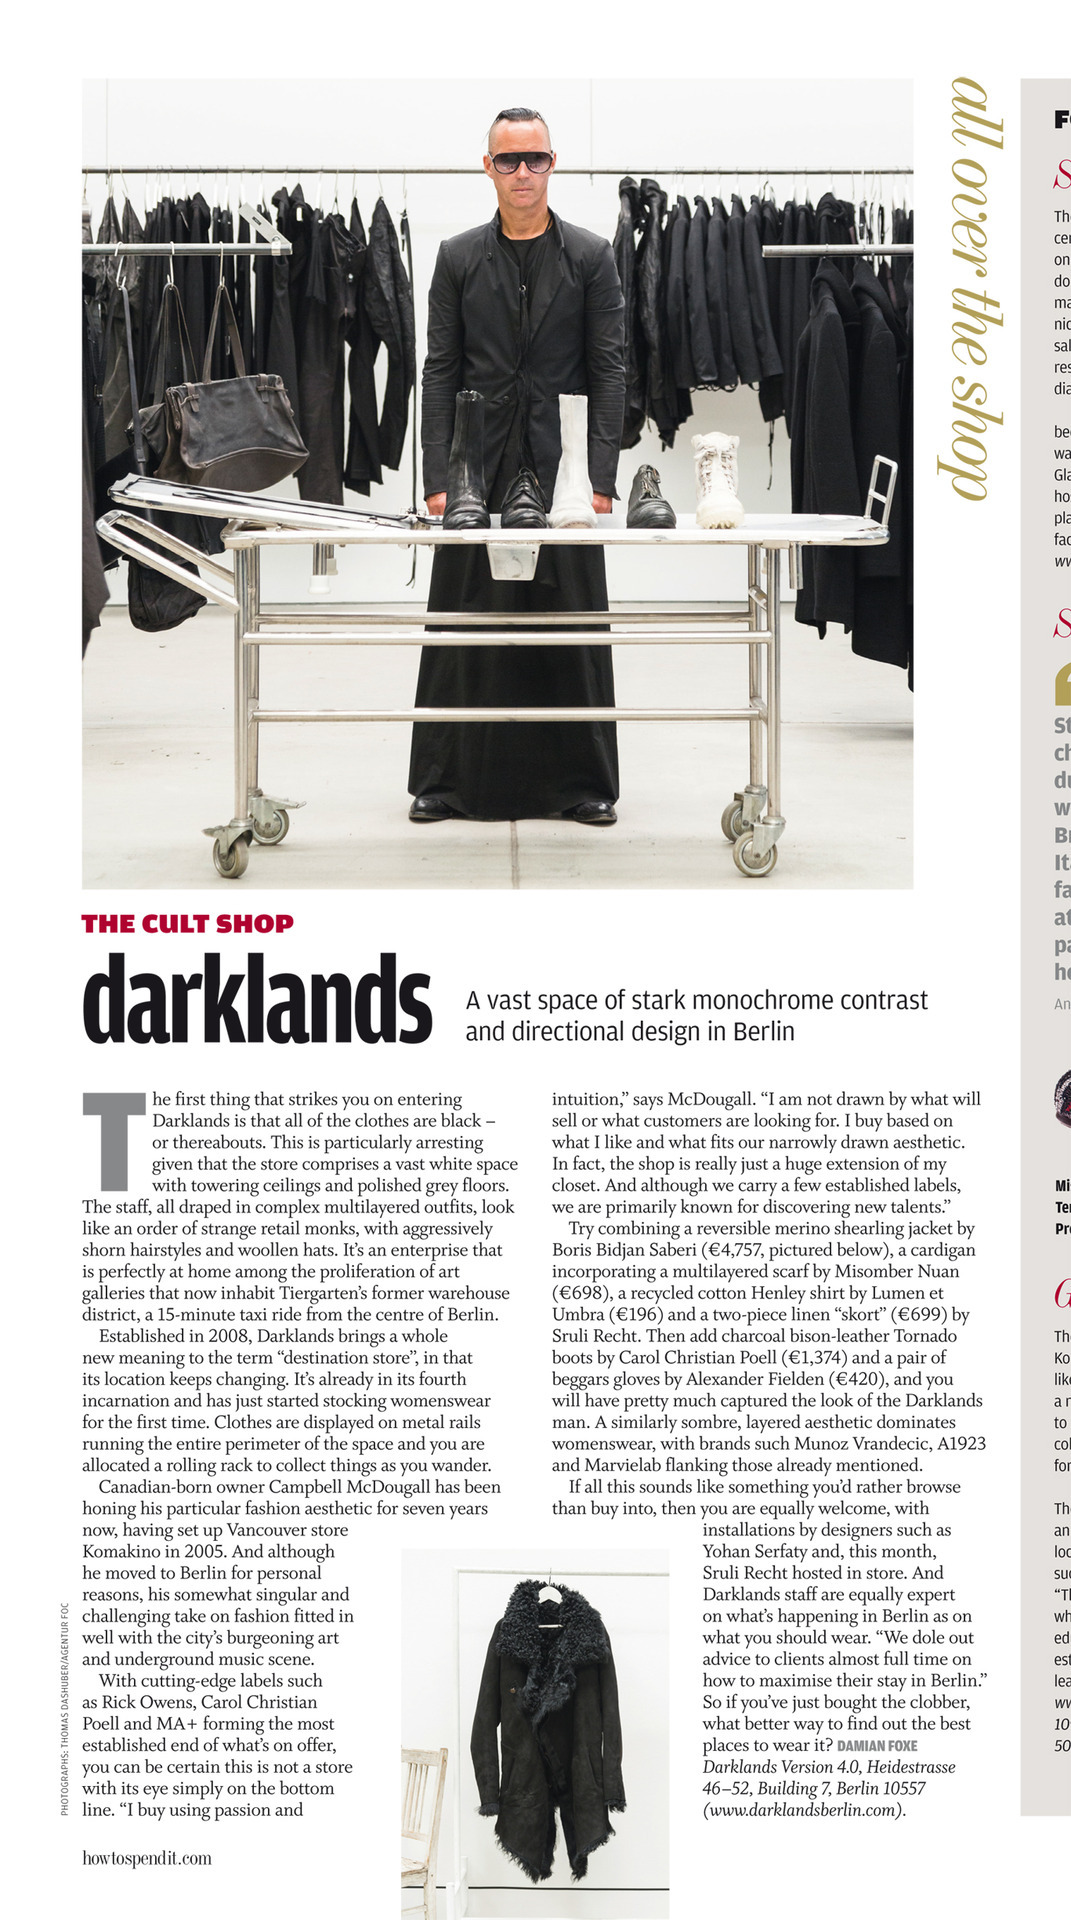 Darklands BerlinGreat store, great buys, impeccable aesthetics